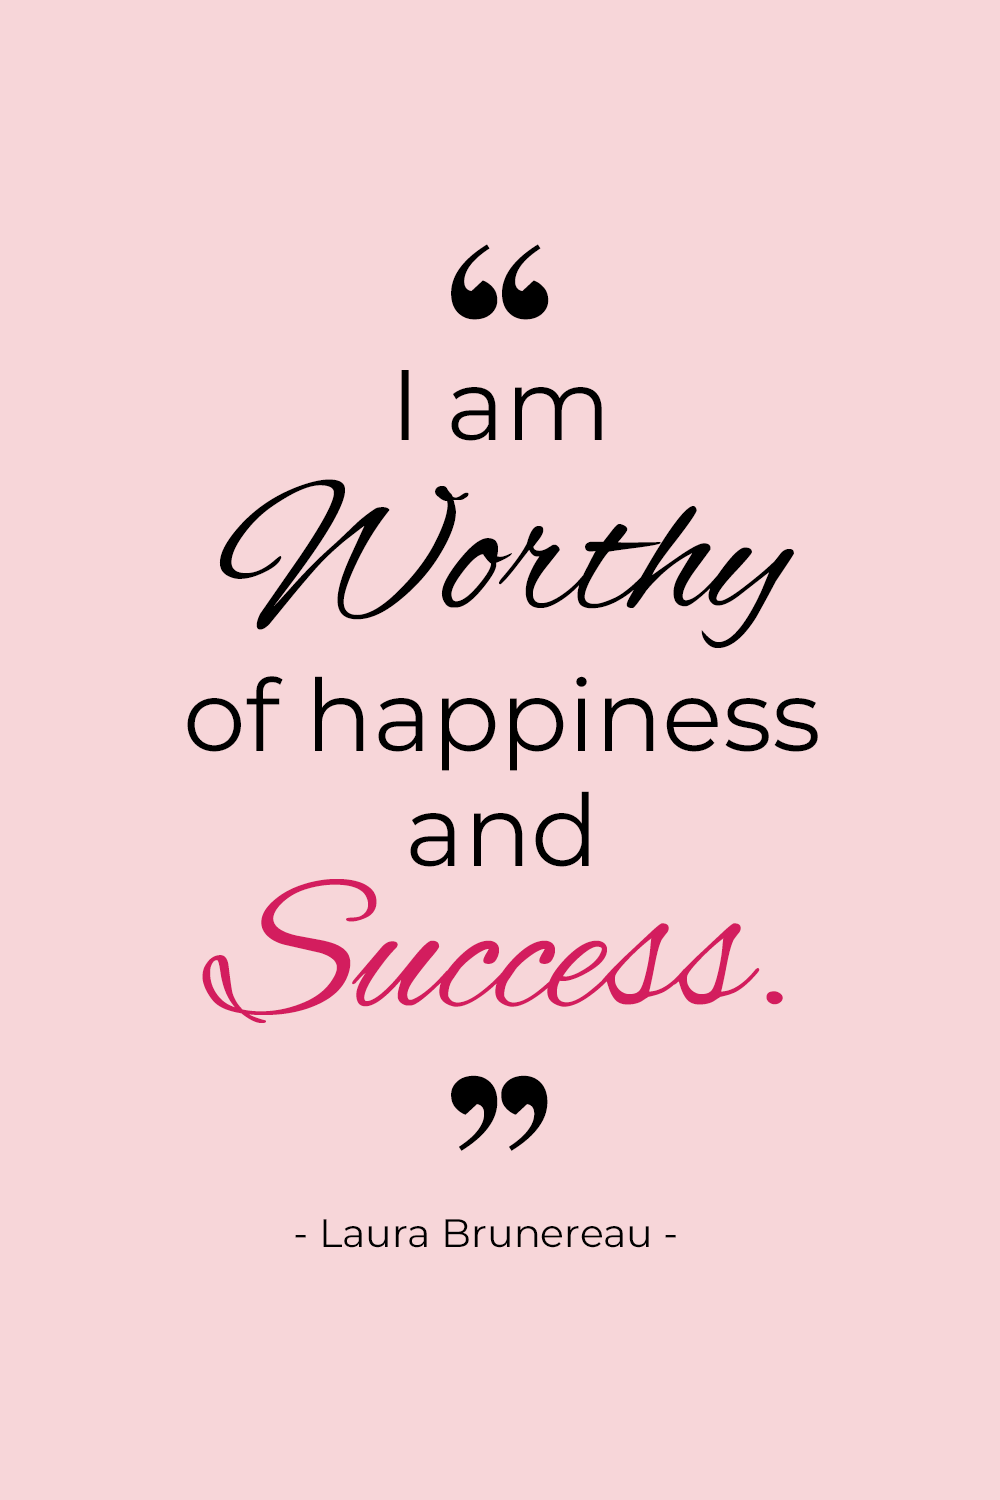 25 Positive Affirmations For Woman Empowerment and Positive Mindset | Quotes Positive Woman Strenght